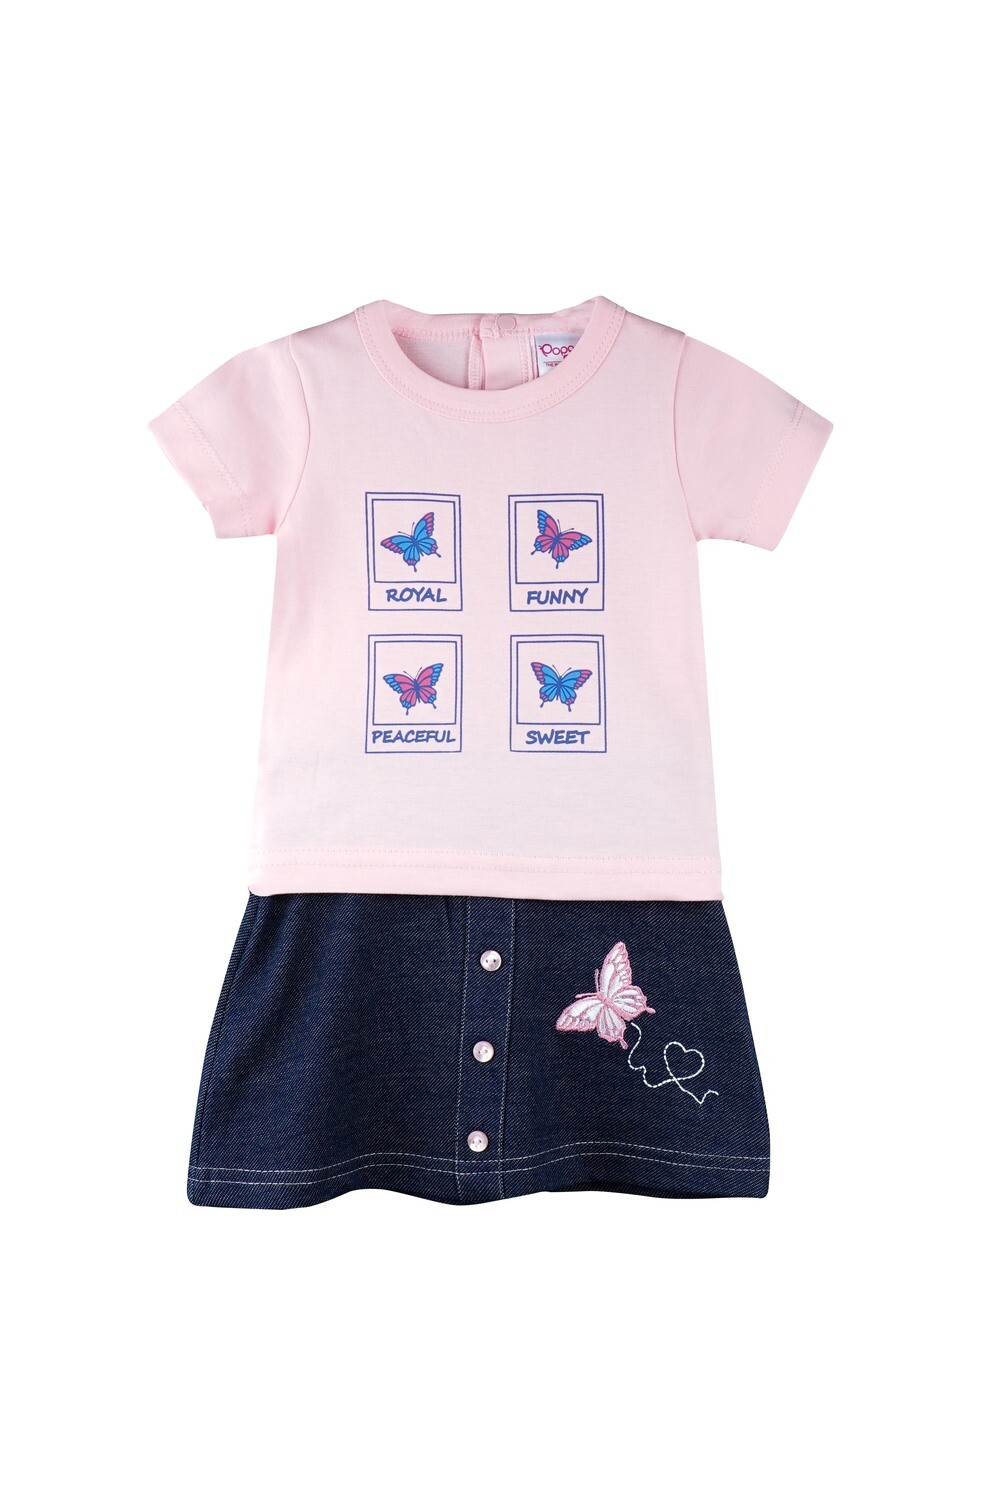 Story Rose Half Sleeves Round Neck T-Shirt with Butterfly Embroidered Skirt for Girls